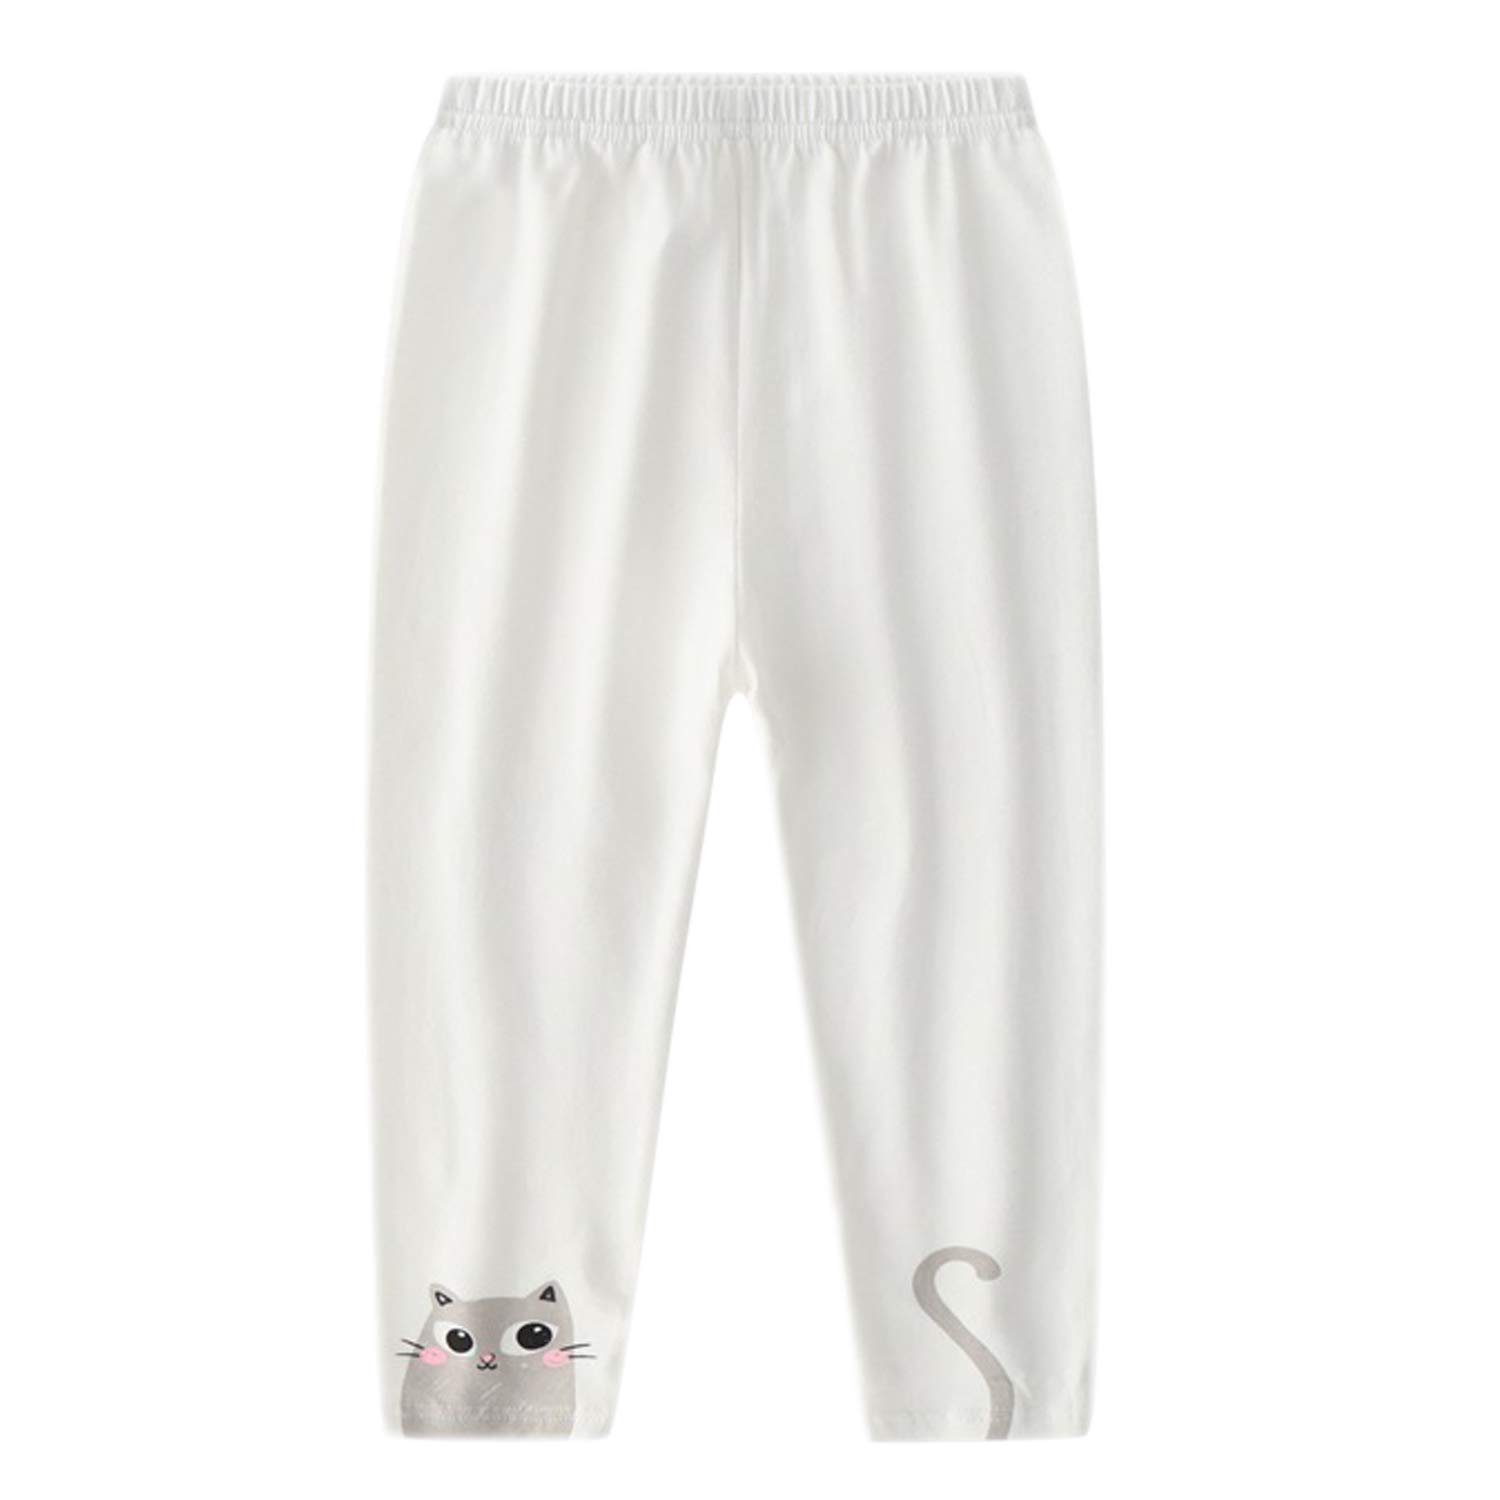 Evelin LEE 4 Packs Baby Girls Cotton Stretchy Tapered Pants Cute Skinny Pajamas Leggings by Evelin LEE (Image #3)